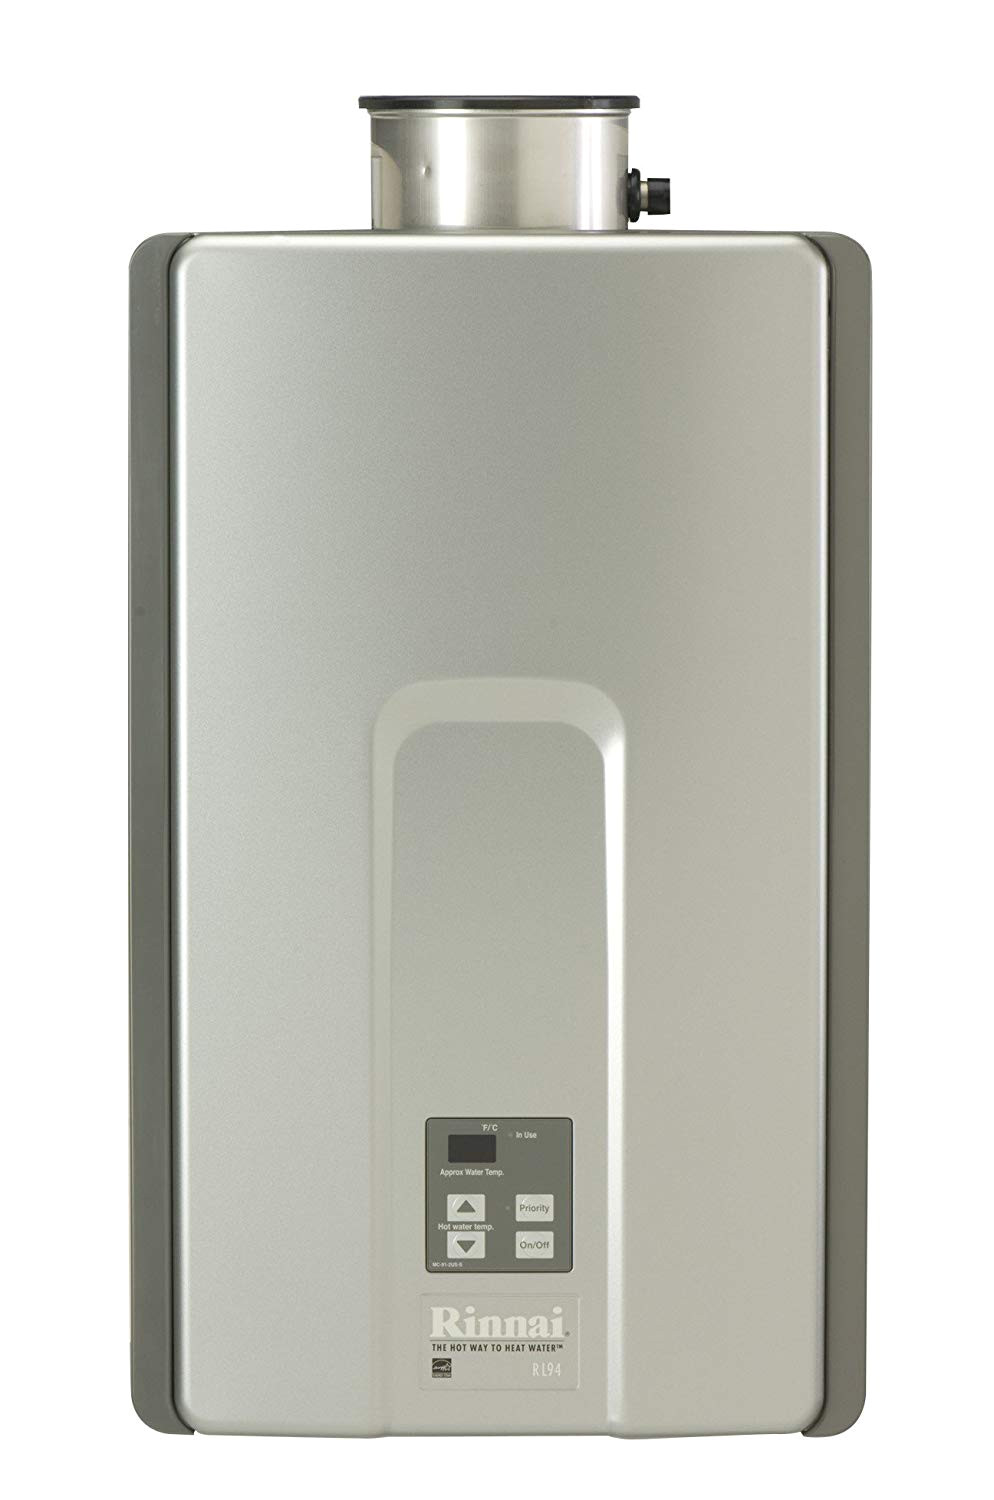 Appliance Stores Duluth Mn Rinnai Rl94ip Water Heater Large Silver Amazon Com